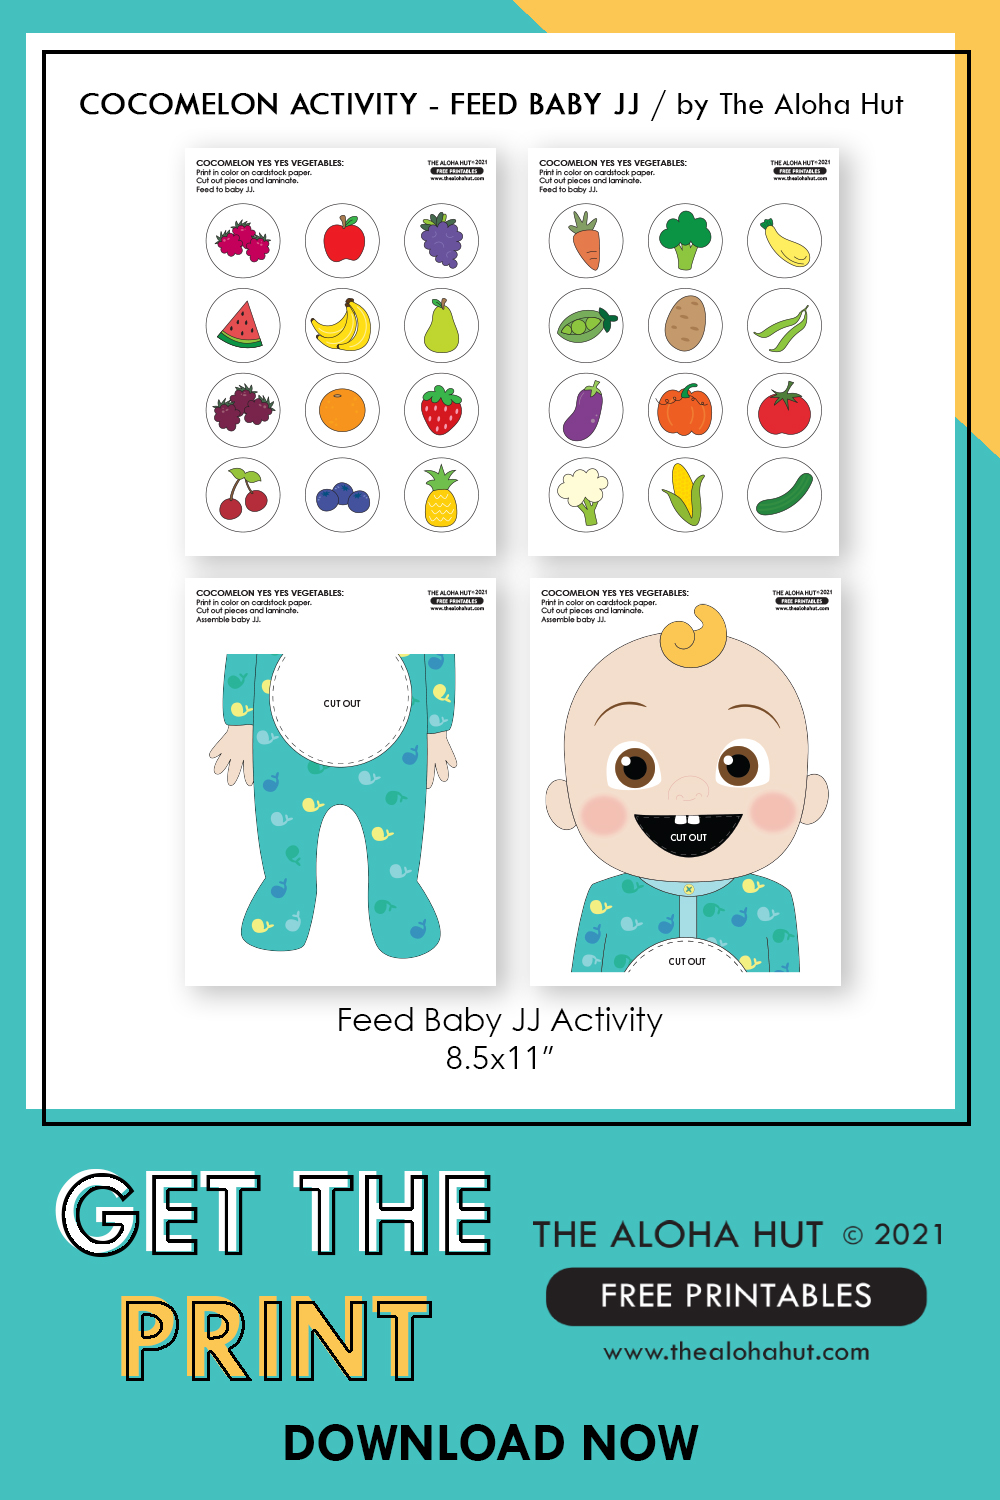 cocomelon feed baby JJ activity free printable 8 by the Aloha Hut